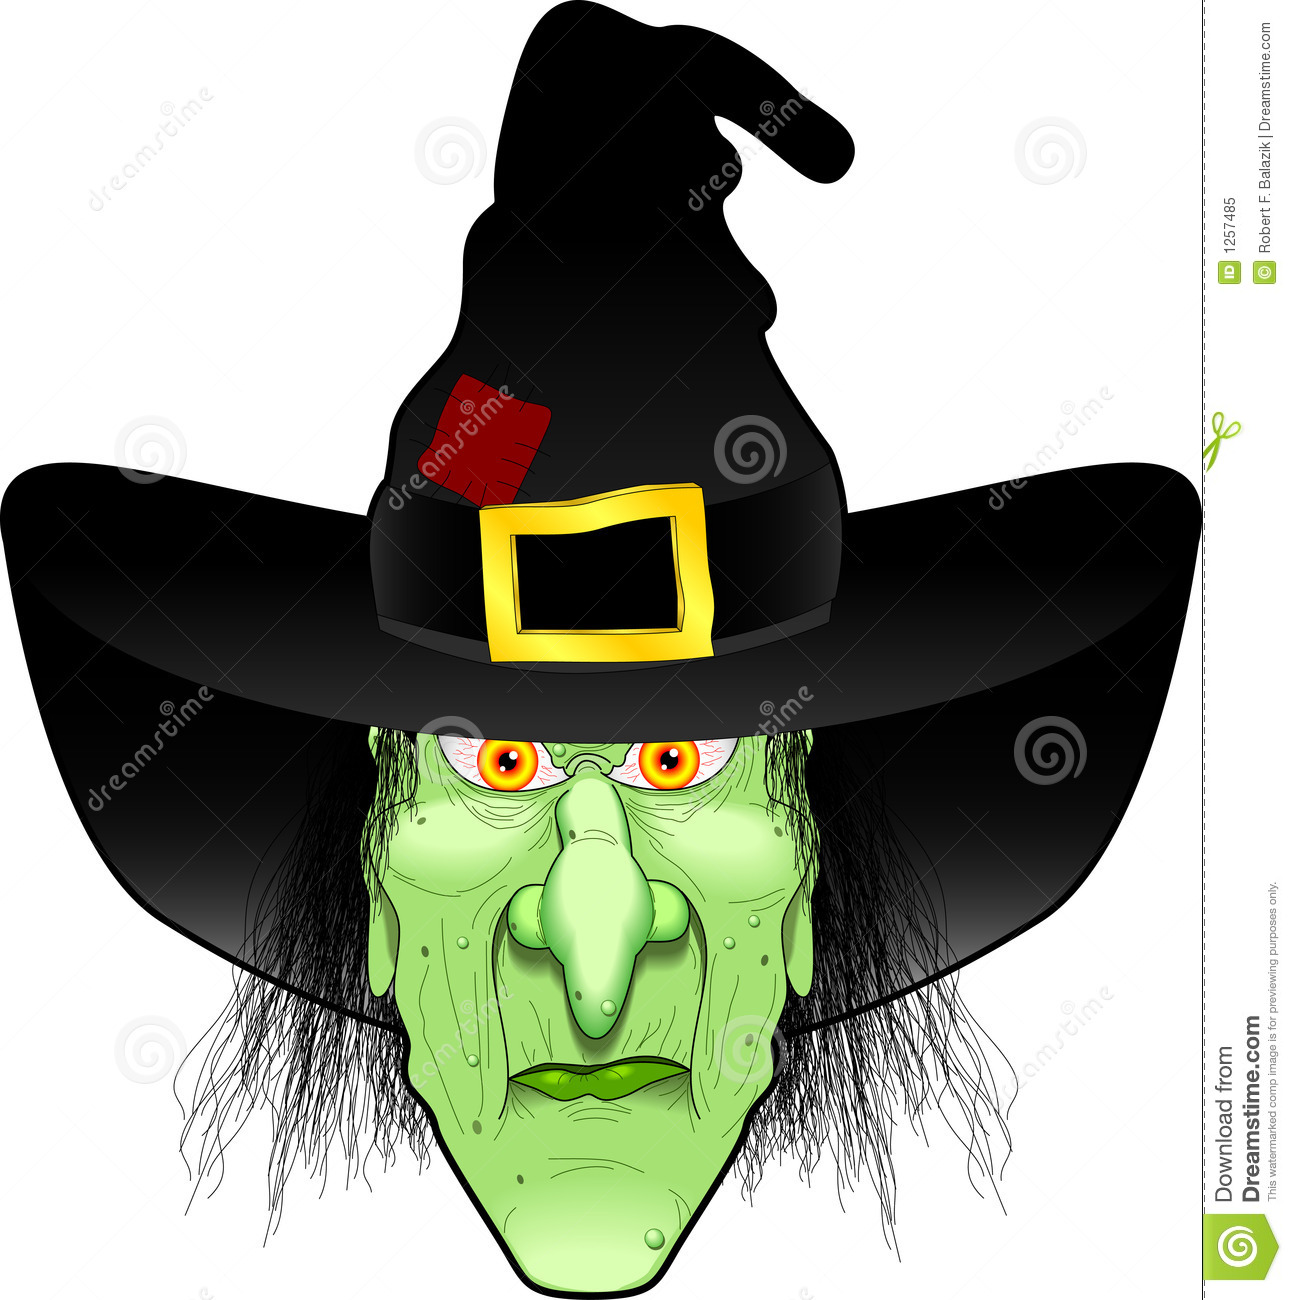 Line Drawing Of Witches Face : Witch face royalty free stock photo image